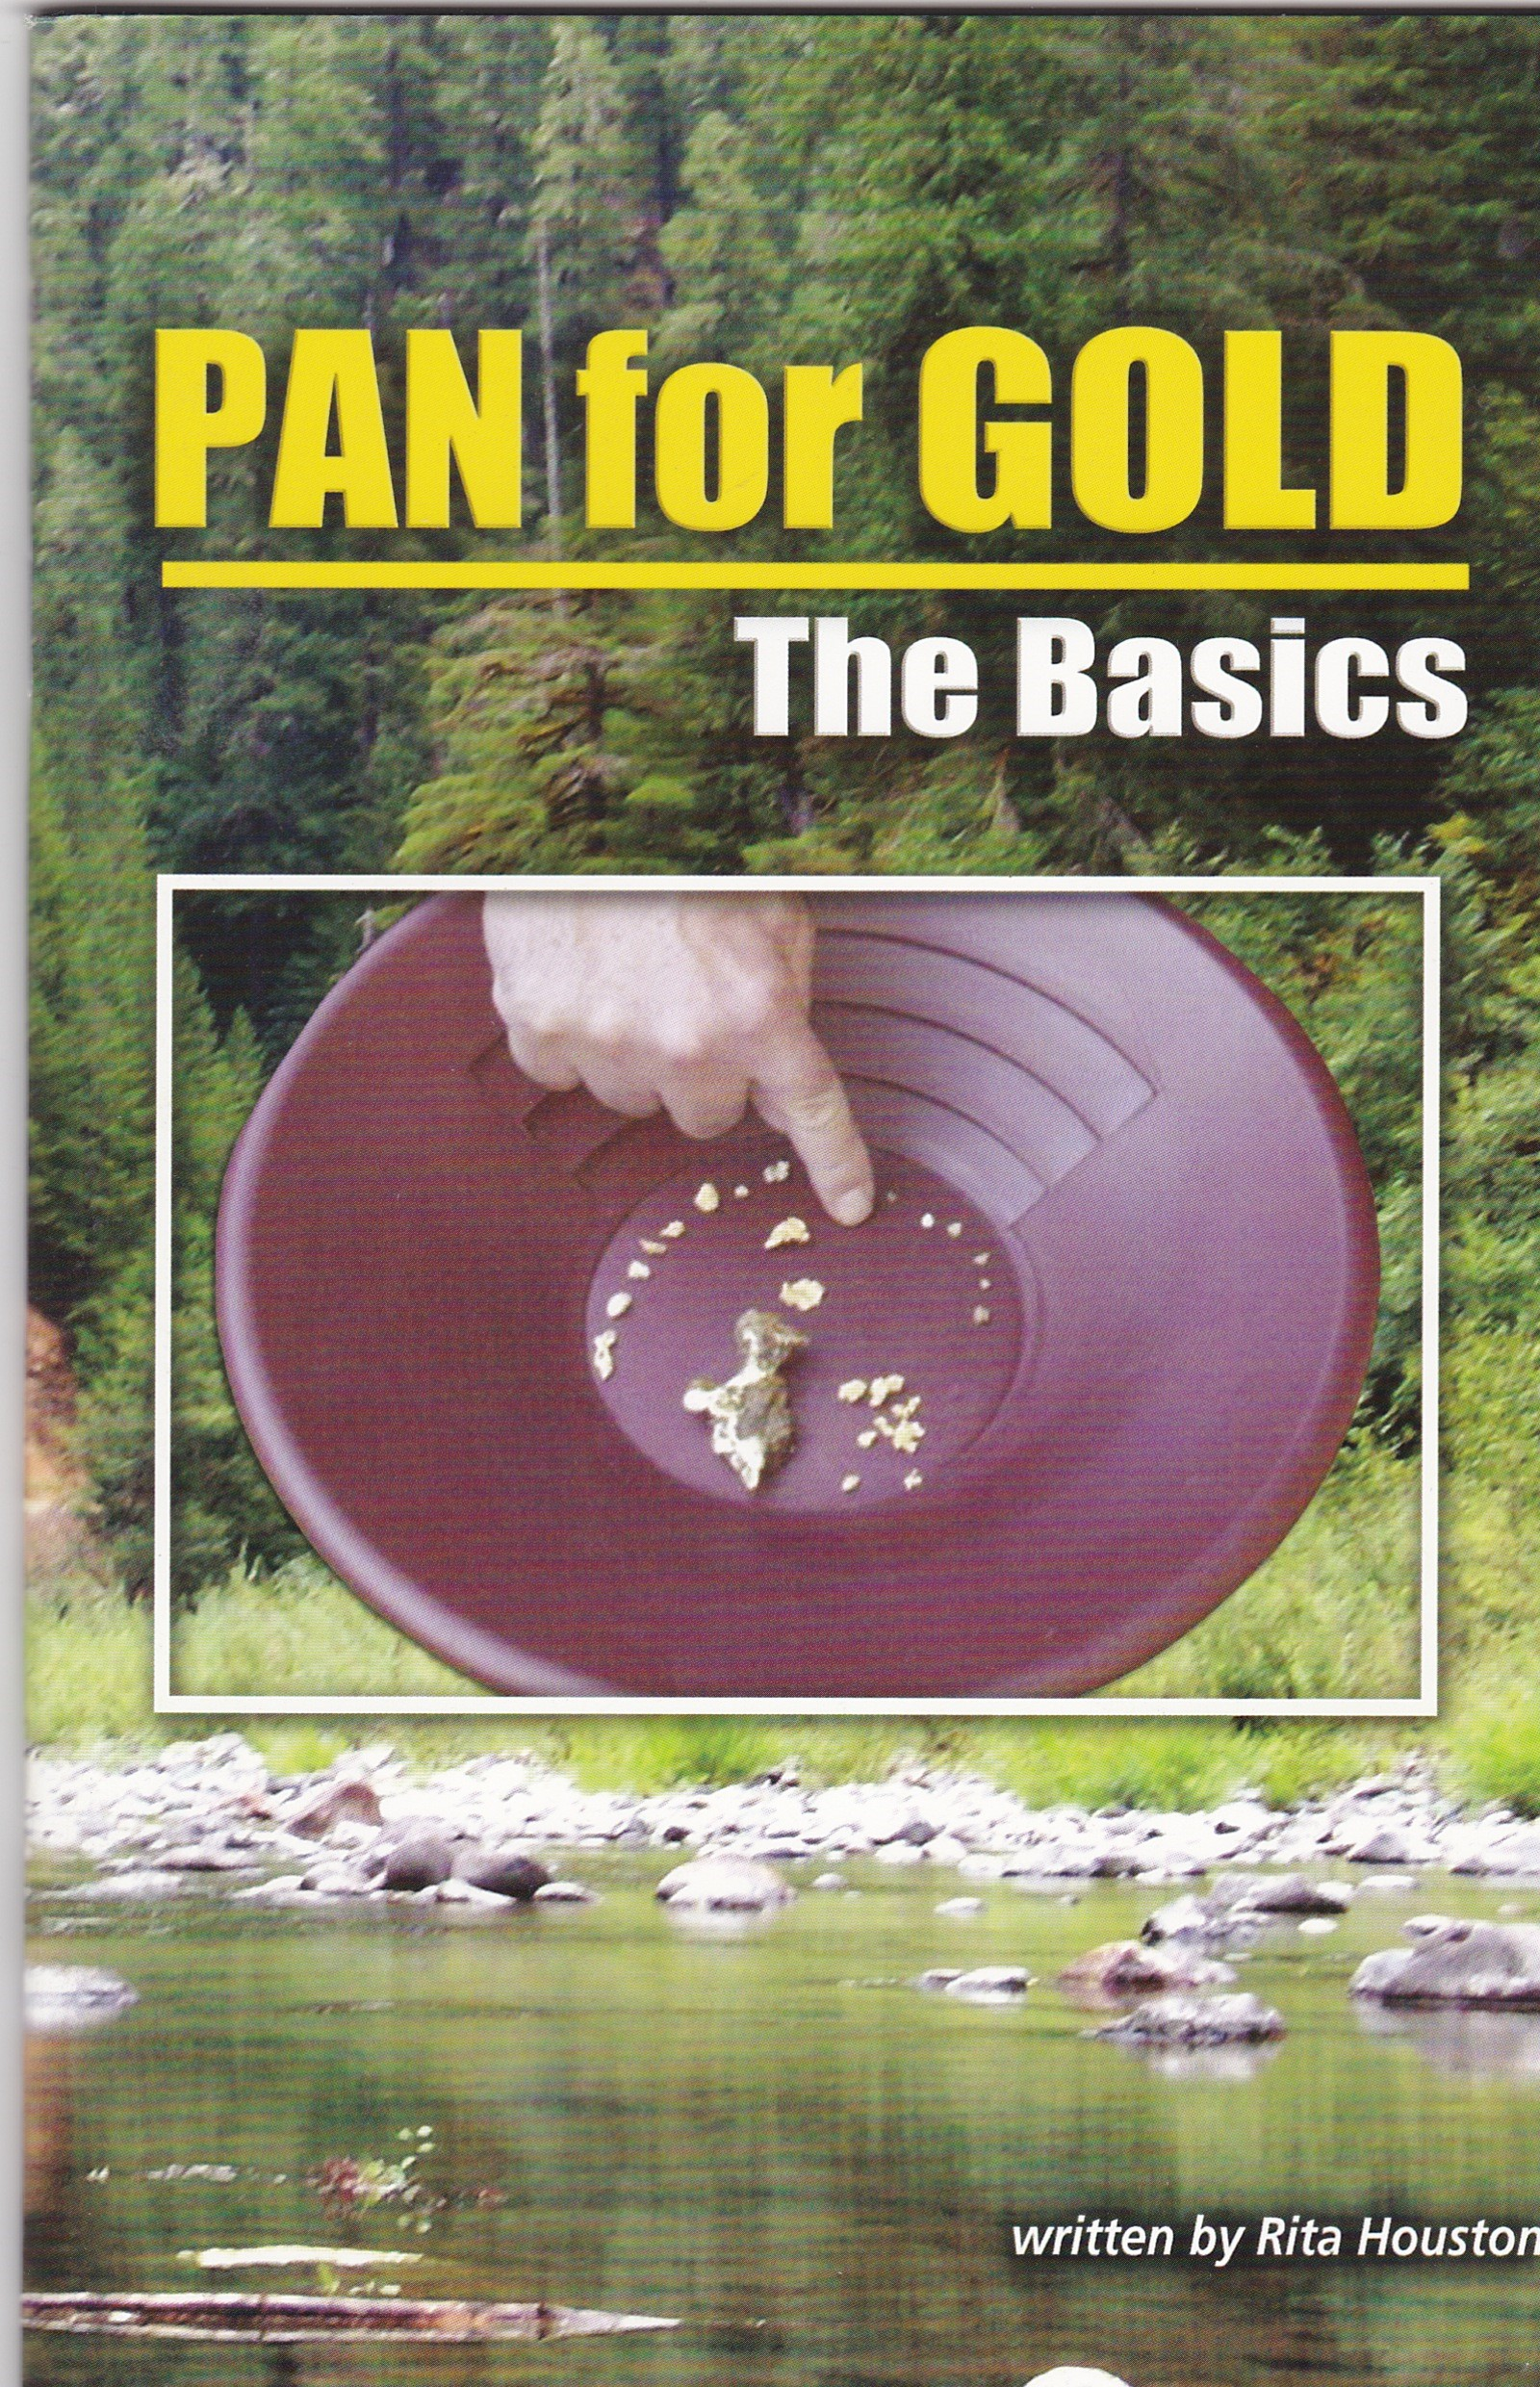 How To Pan For Gold #824